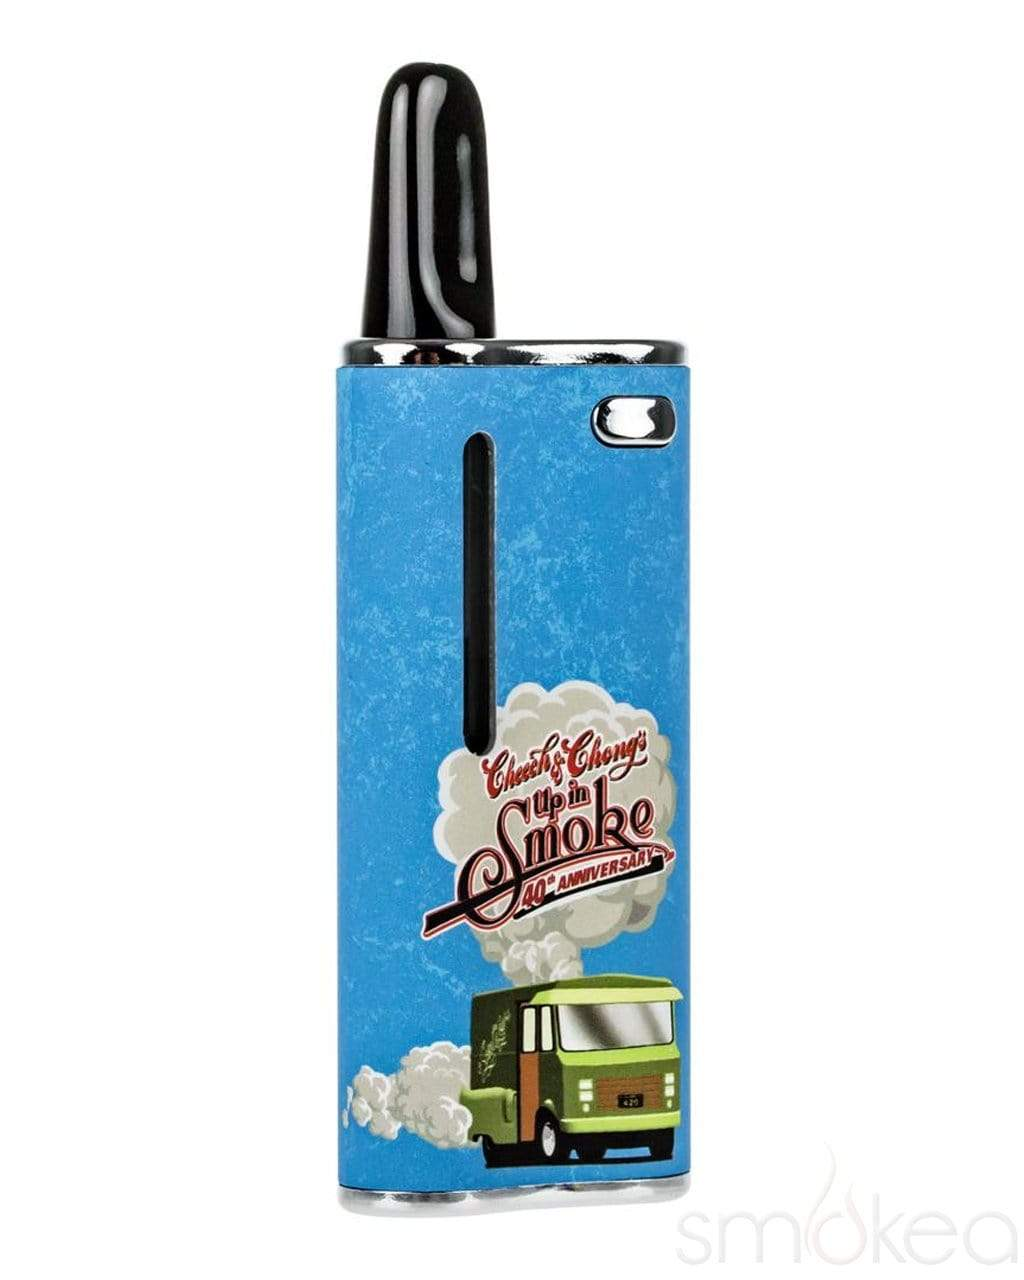 Cheech & Chong's Up in Smoke Vaporizer